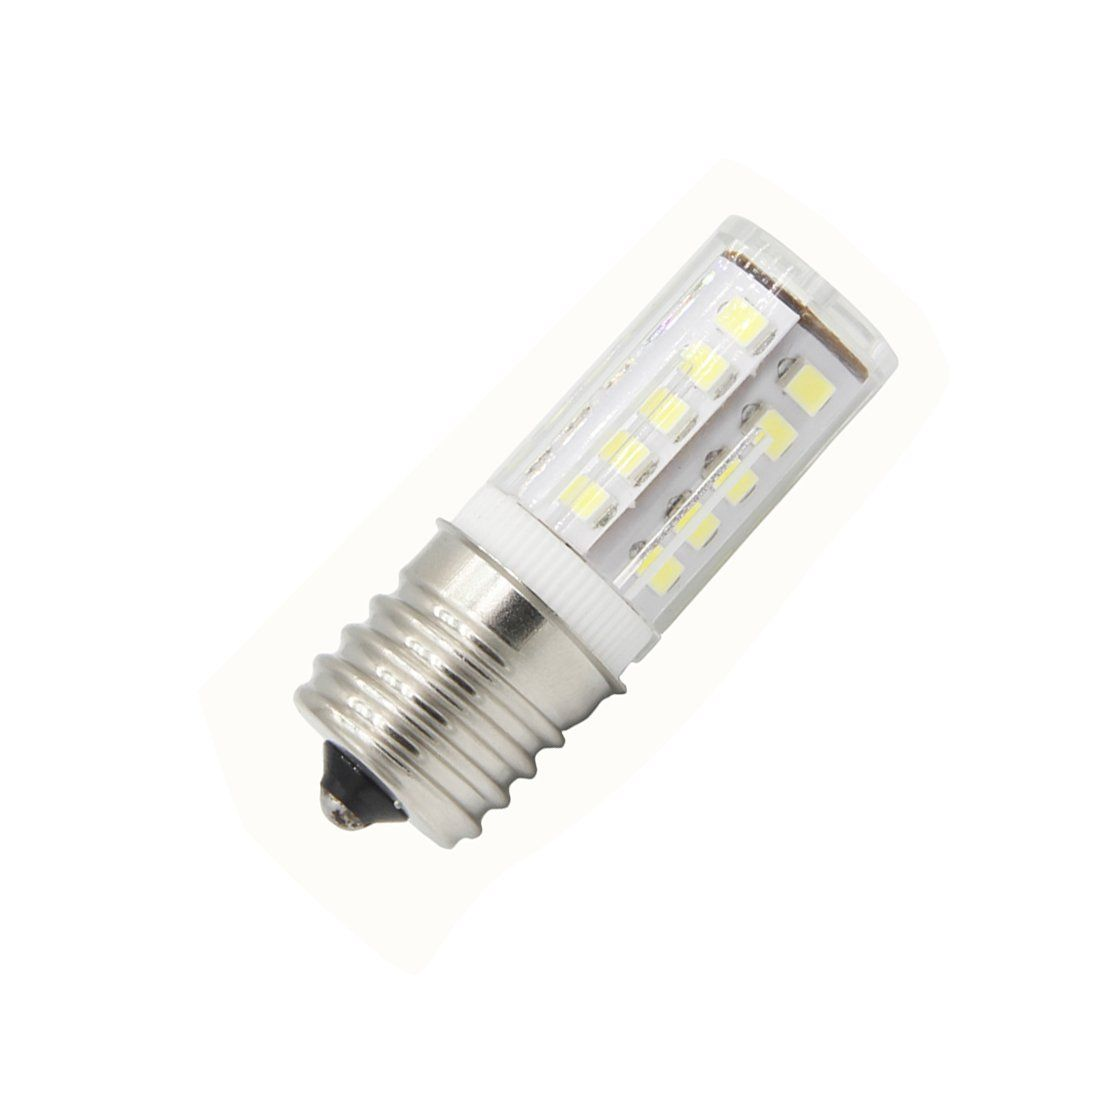 Lanyuee17 Jd Base 3w 120v Led 25w Halogen Replacement Light Bulbdimmable Daylight 6000k 5packs 3w Daylight 6000k See This Exc In 2020 Light Bulb Bulb Light